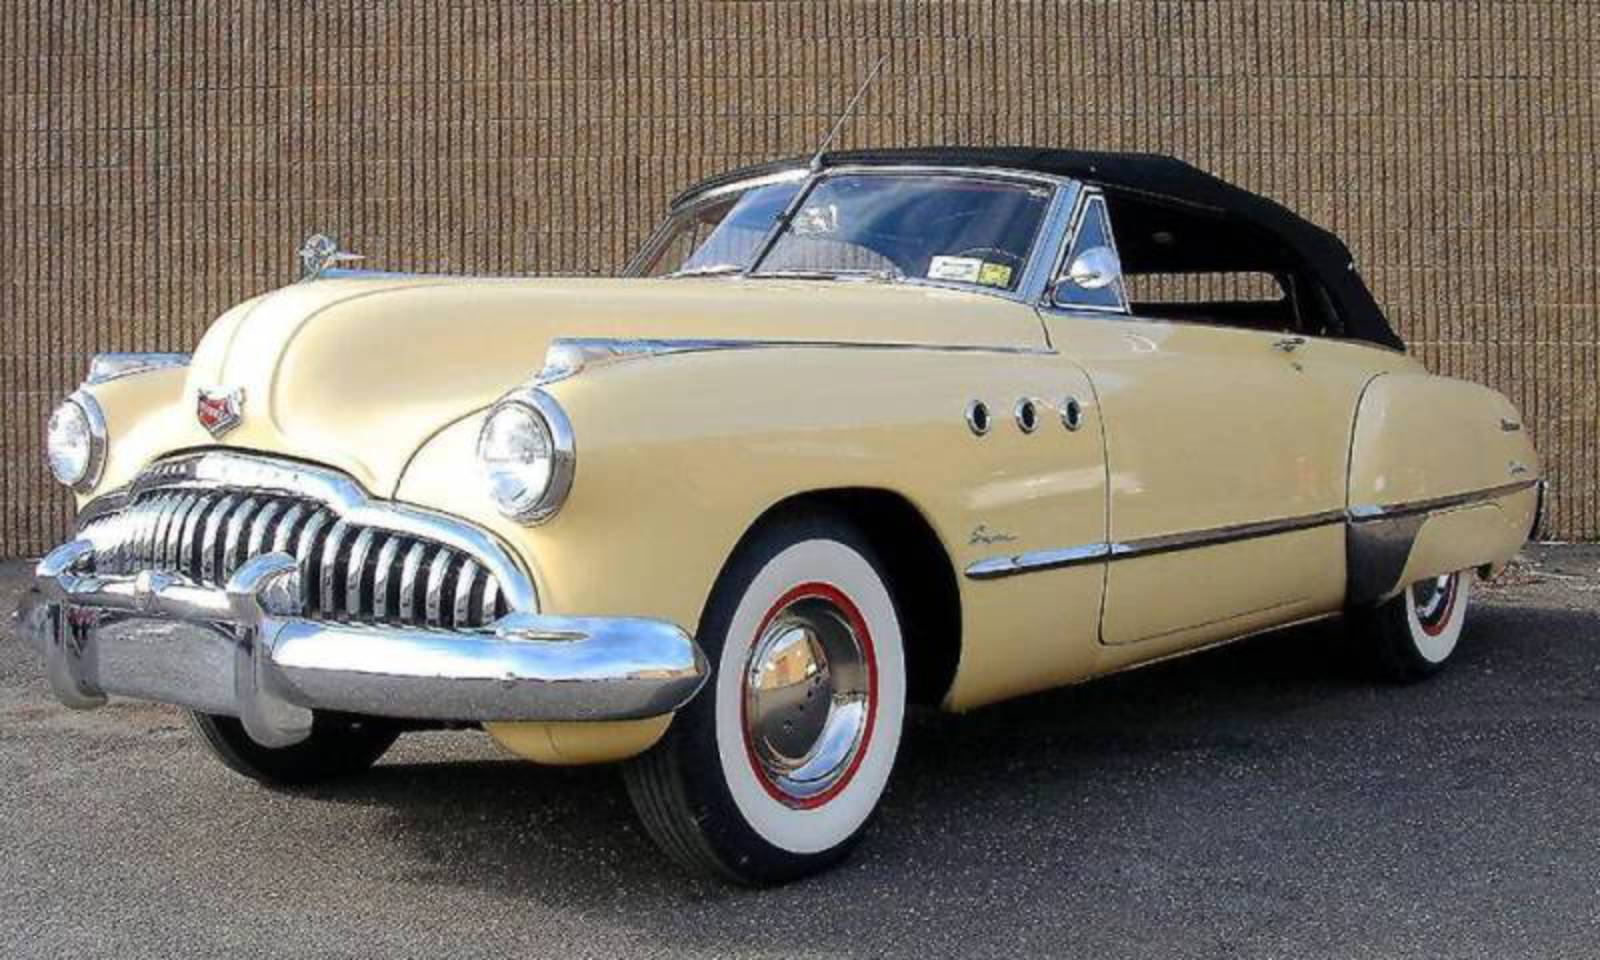 Yellow 49 Buick Super convertible with 248cid/115hp Inline 8 with an